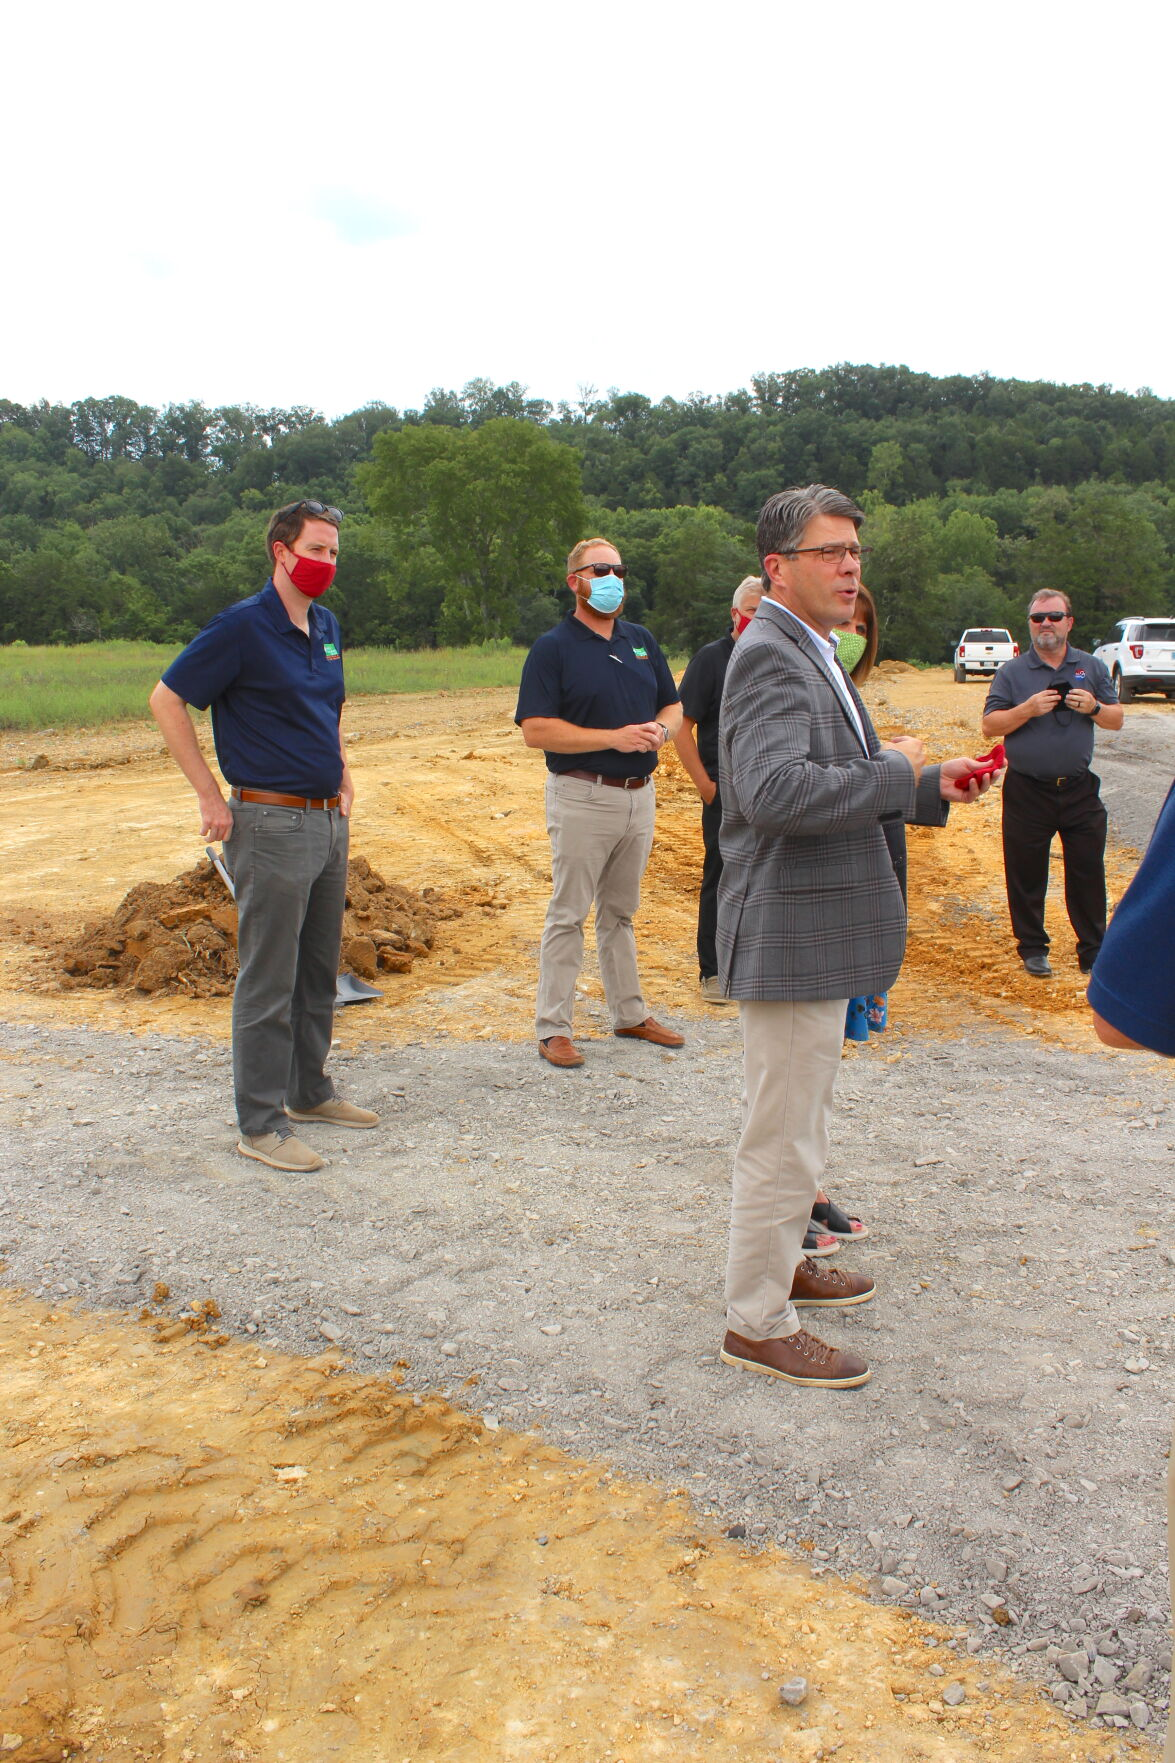 Kudzu Millwork breaks ground on 40,000 square foot facility in Fort Payne